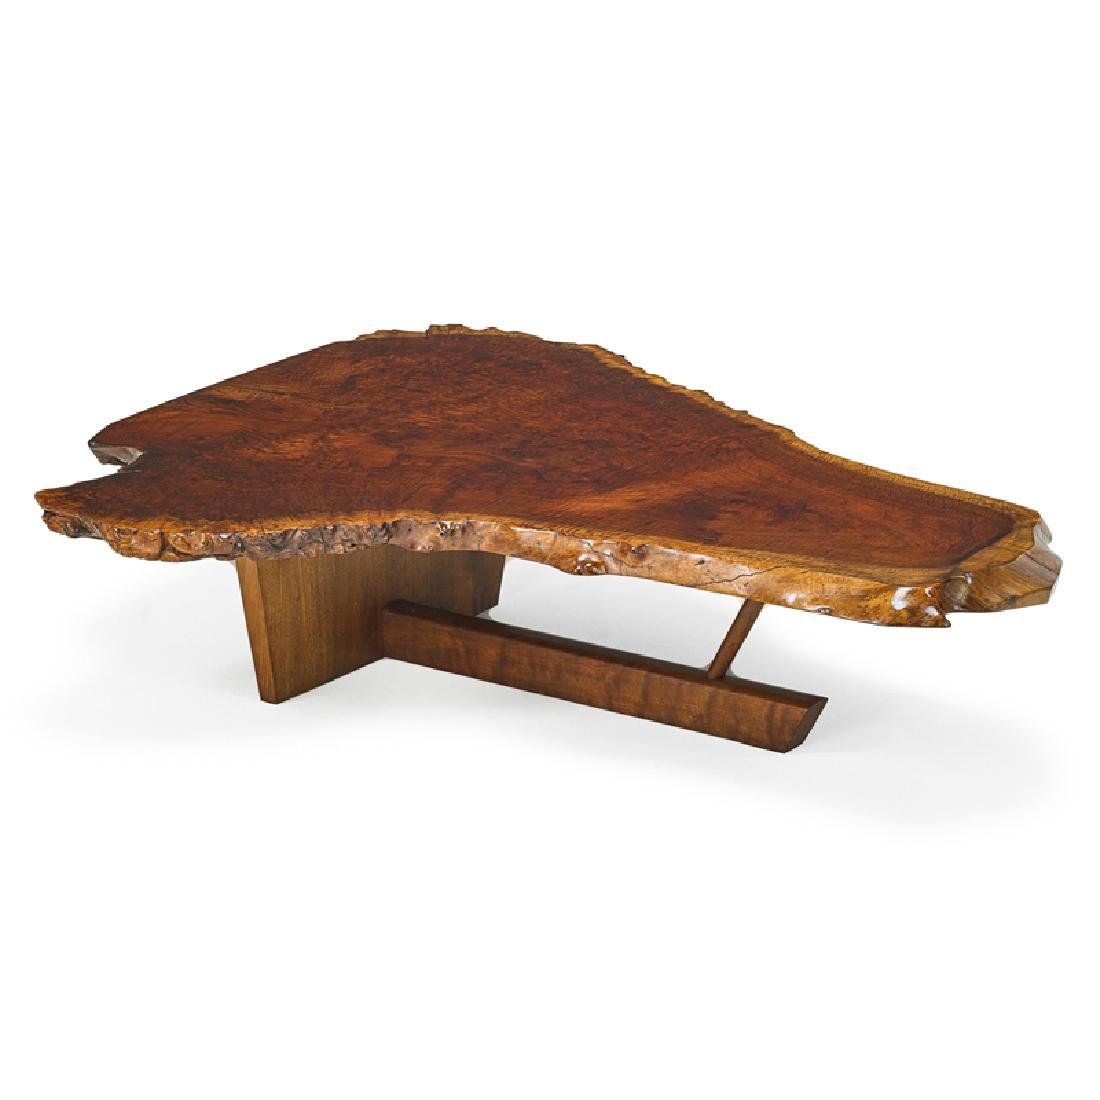 GEORGE AND MIRA NAKASHIMA Fine coffee table